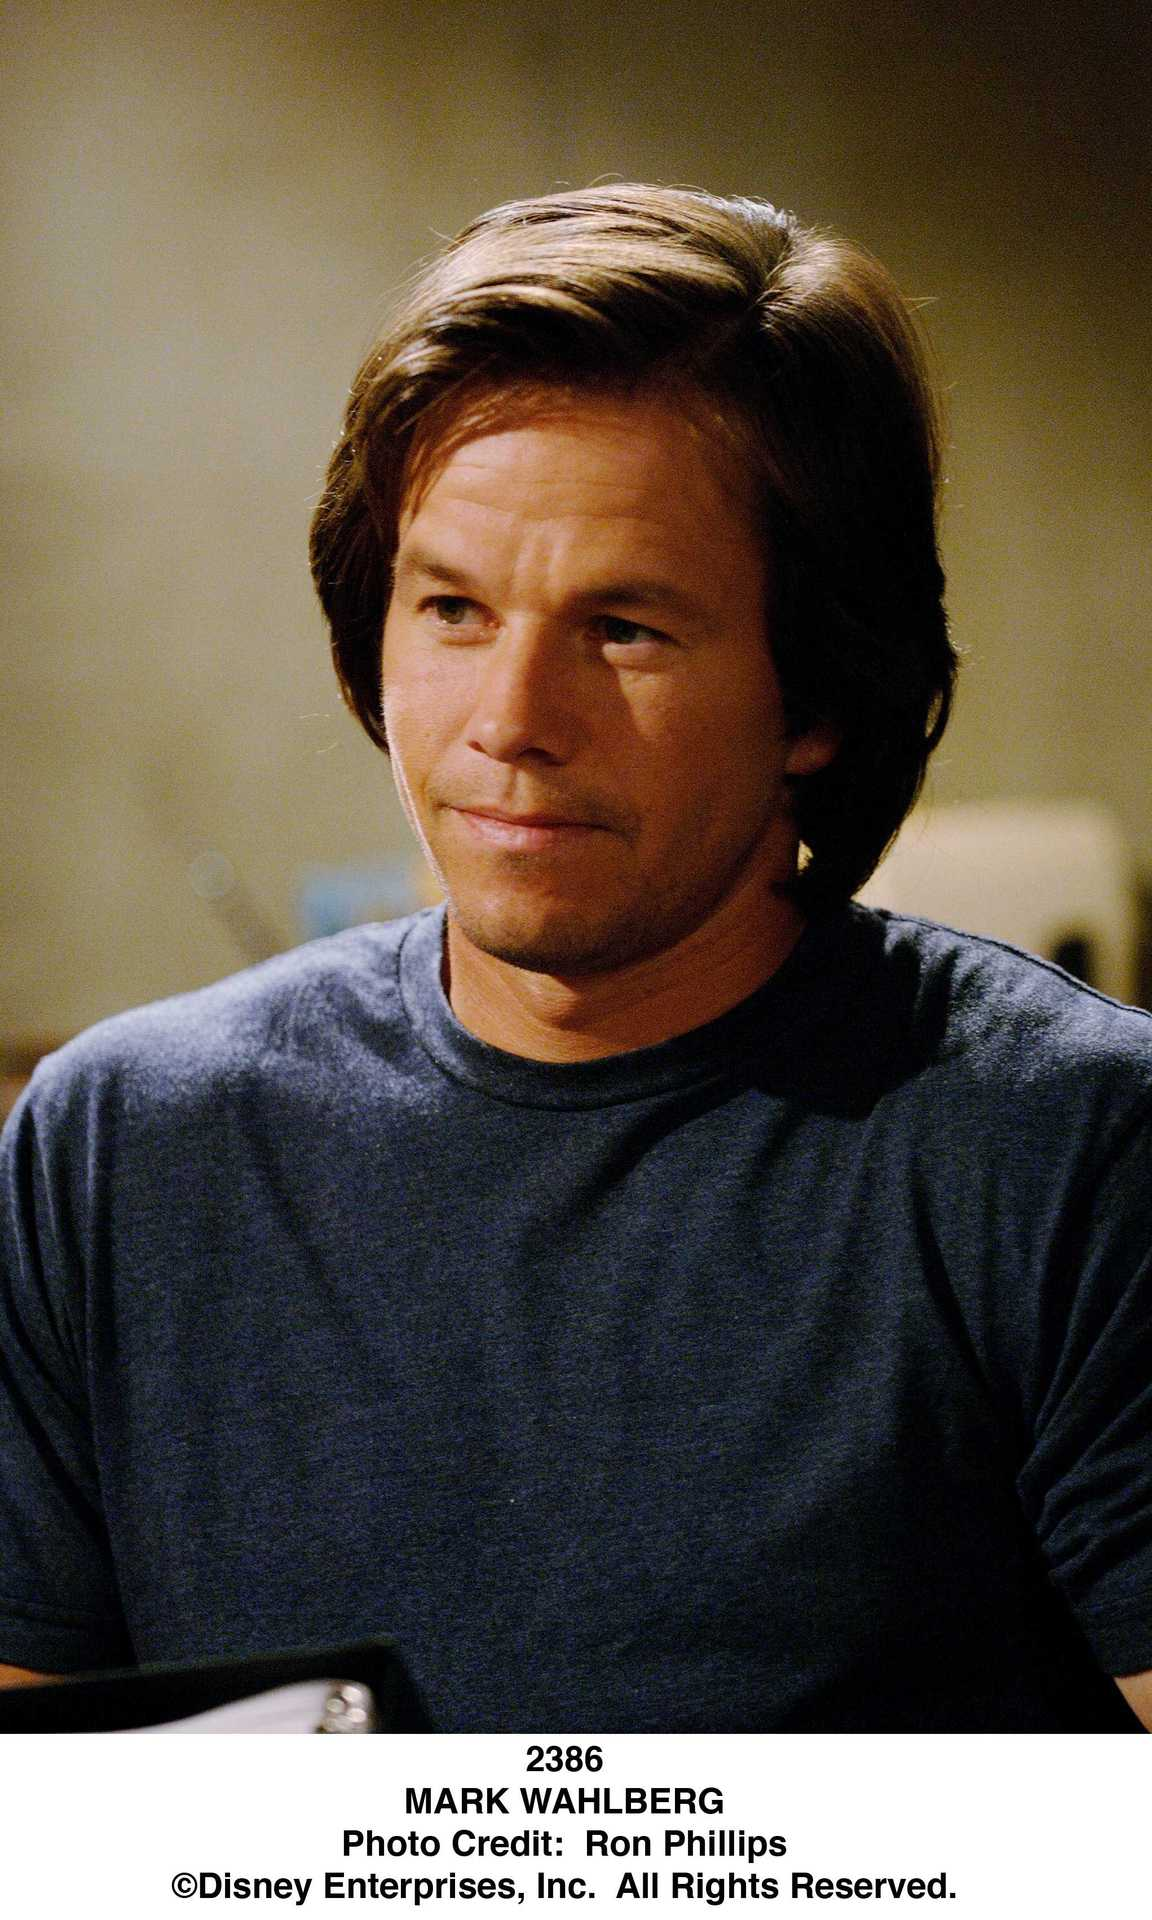 1000 images about movie   mark wahlberg on pinterest mark wahlberg